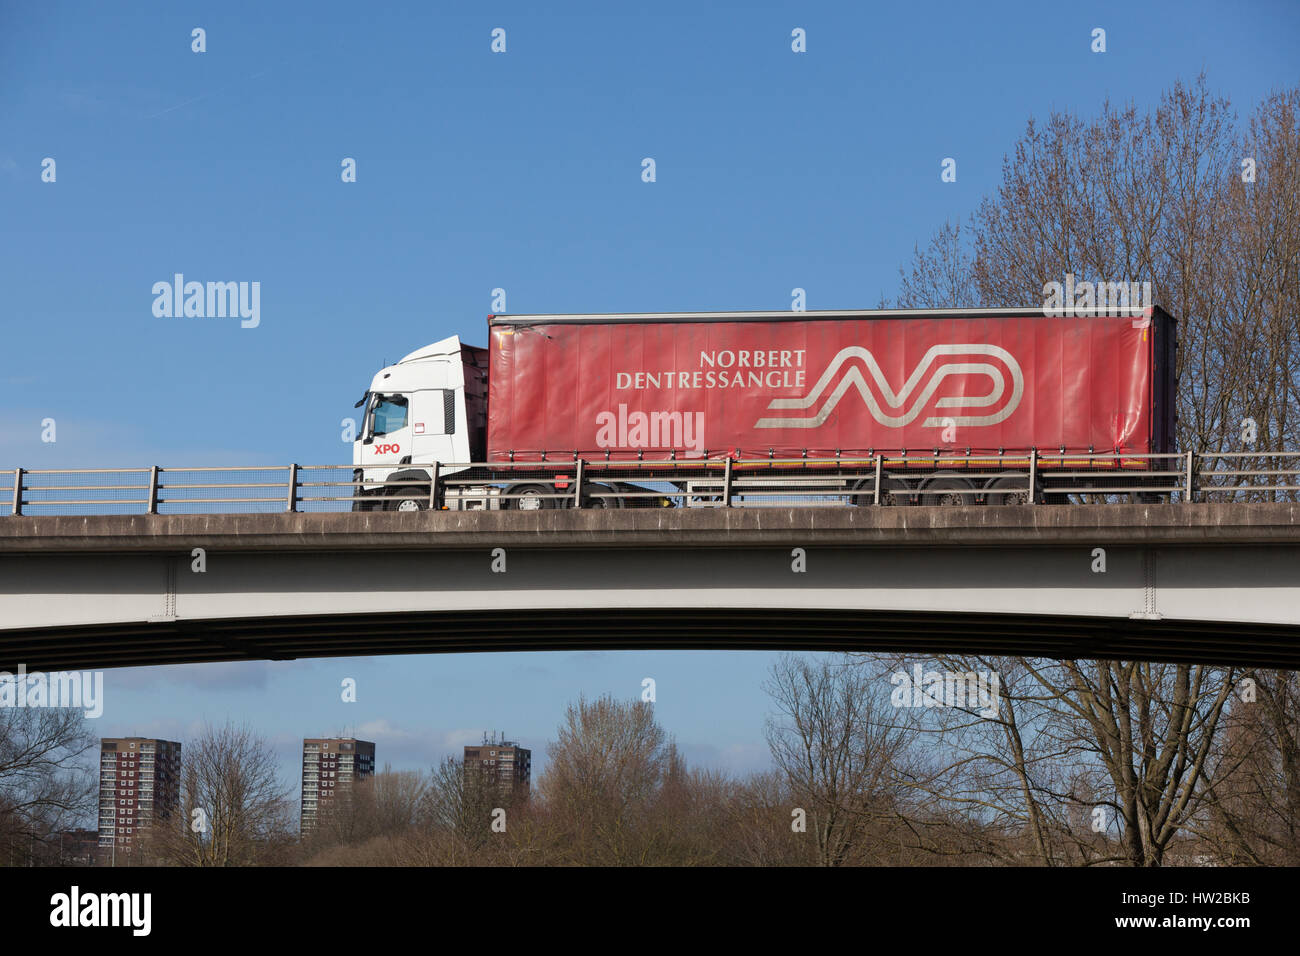 Norbert Dentressangle lorry on the road in the Midlands Stock Photo